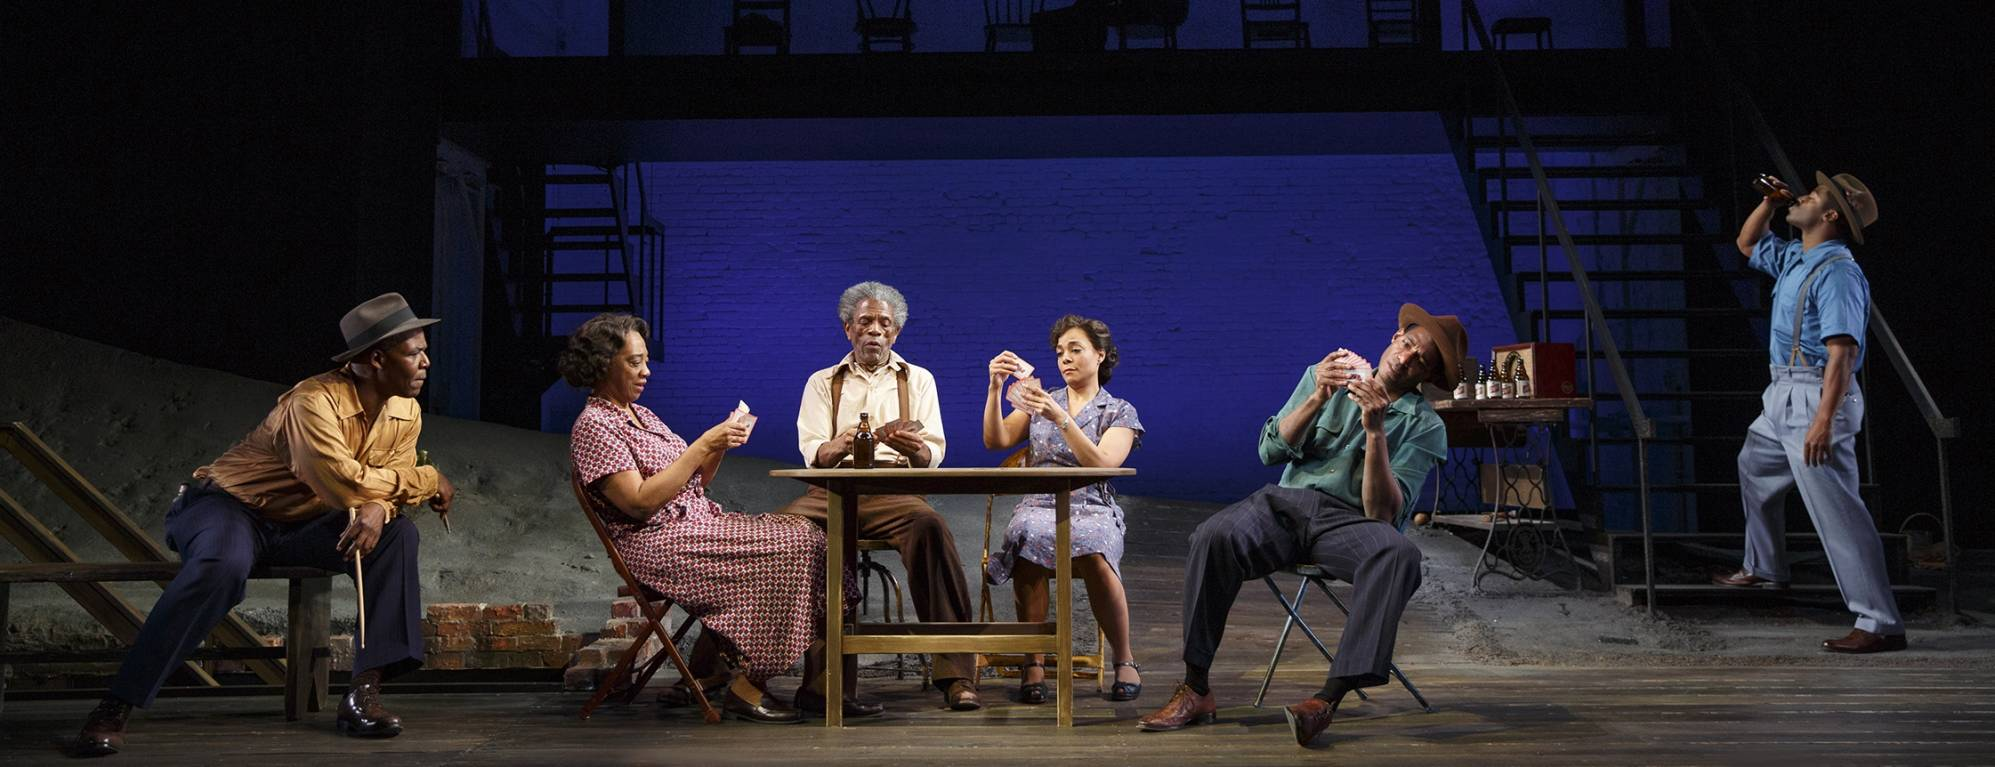 Danny Johnson, Stephanie Berry, André De Shields, Rachel Leslie, Billy Eugene Jones, and Wayne T. Carr in August Wilson's Seven Guitars, directed by Timothy Douglas. Photo by Joan Marcus 2016.